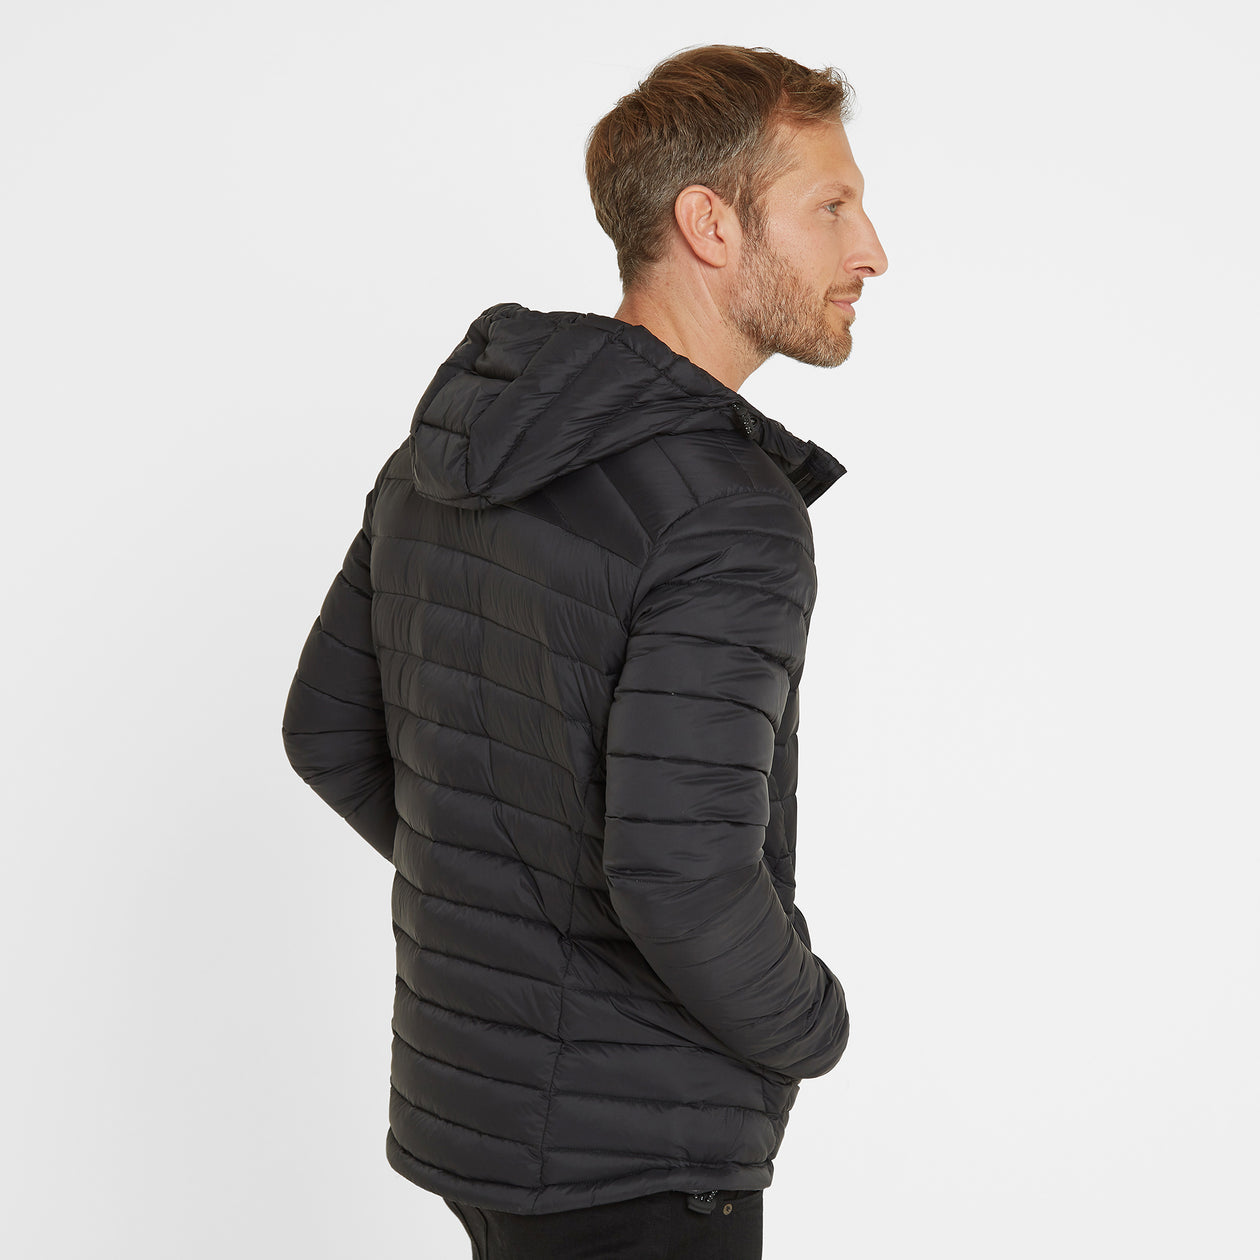 Base Mens Hooded Down Jacket - Coal Grey image 4